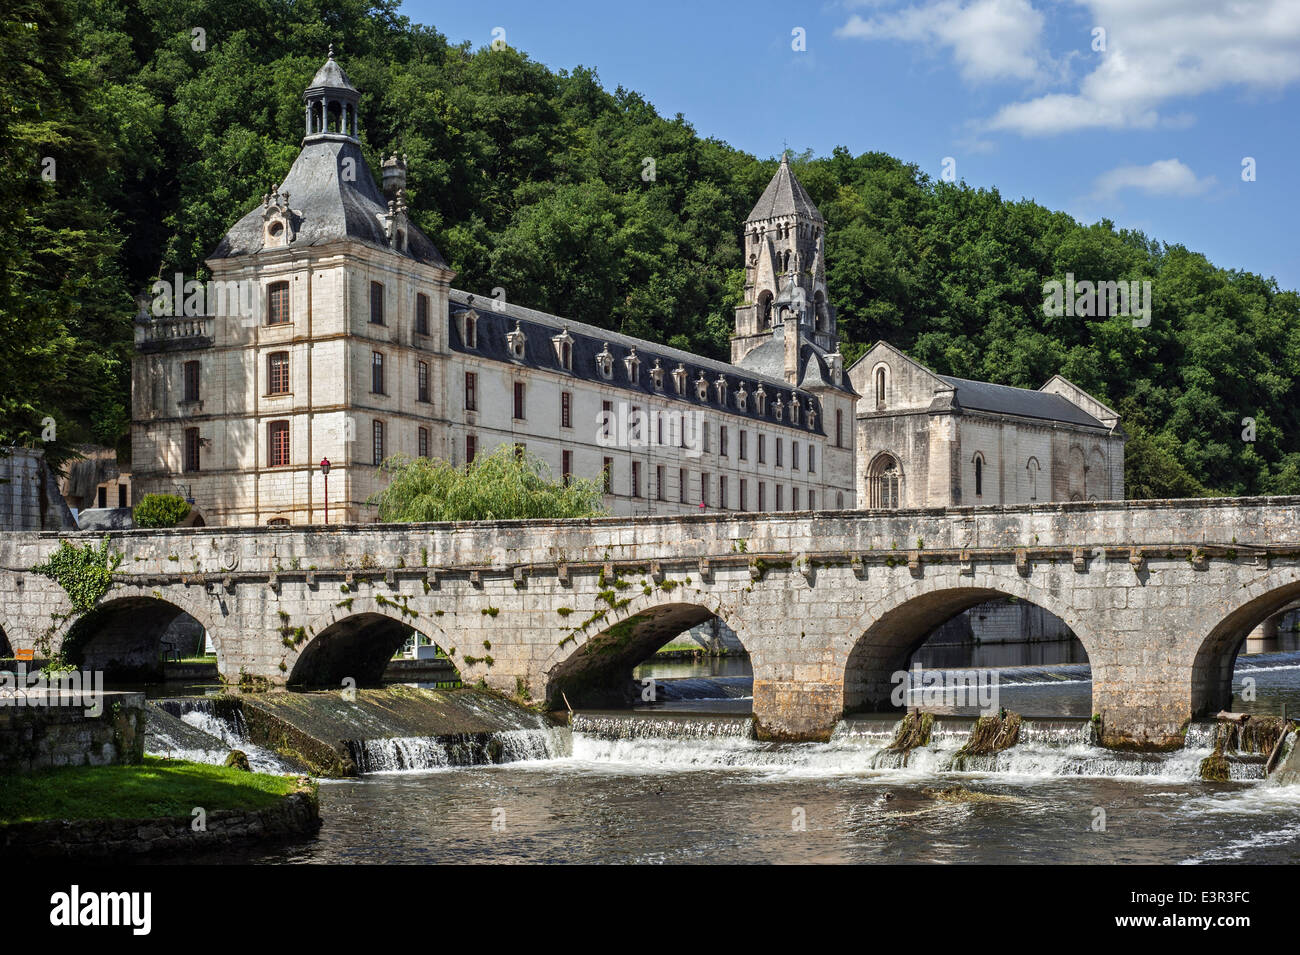 The Benedictine abbey abbaye Saint-Pierre de Brantôme and its bell tower along the river Dronne, Dordogne, - Stock Image